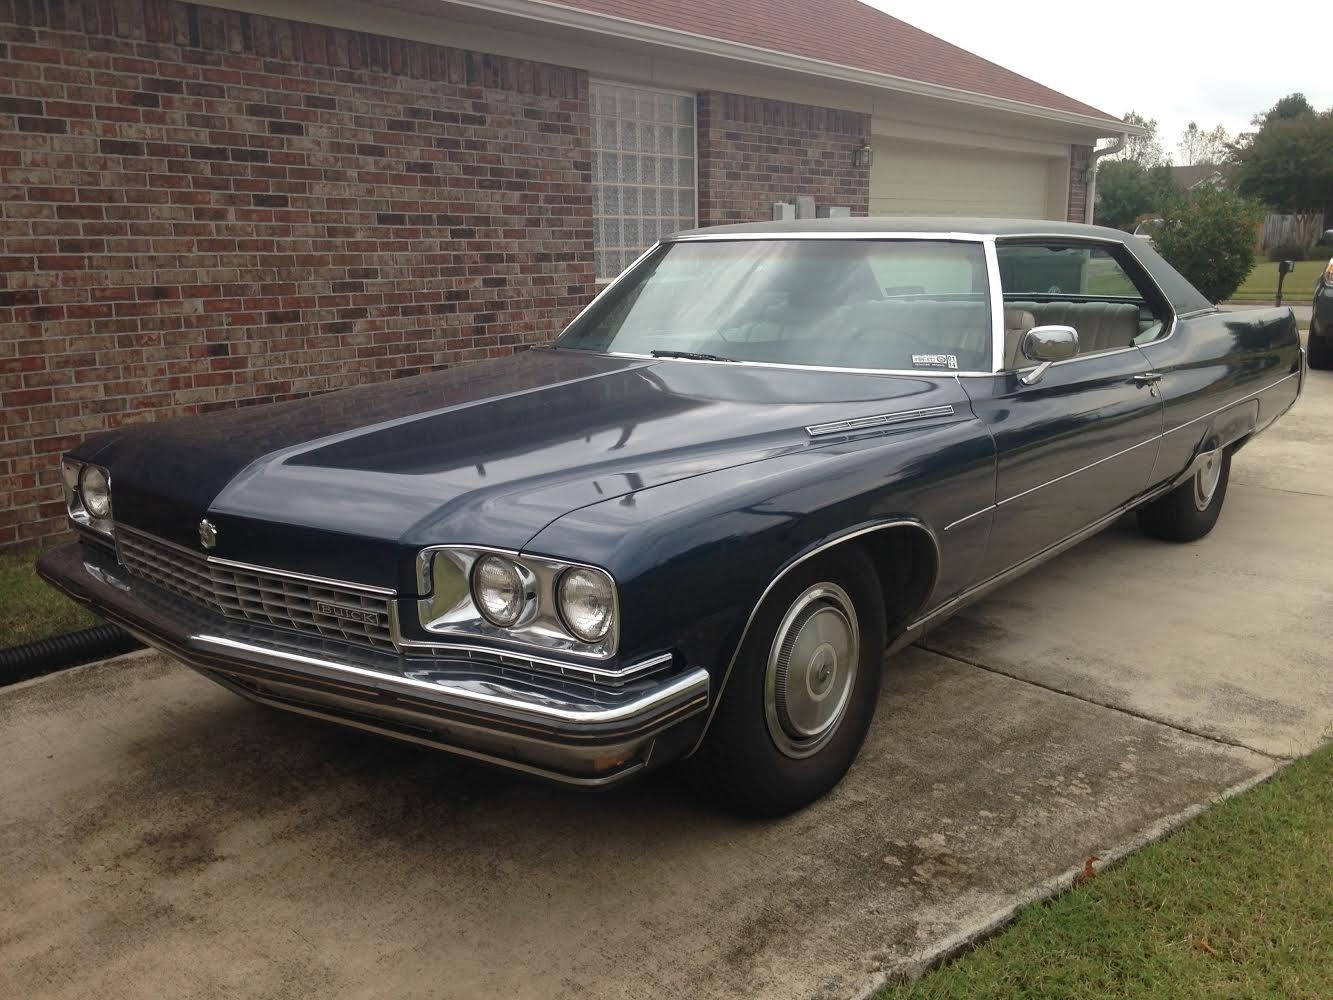 Buick Electra Pic X on 1985 Buick Park Avenue